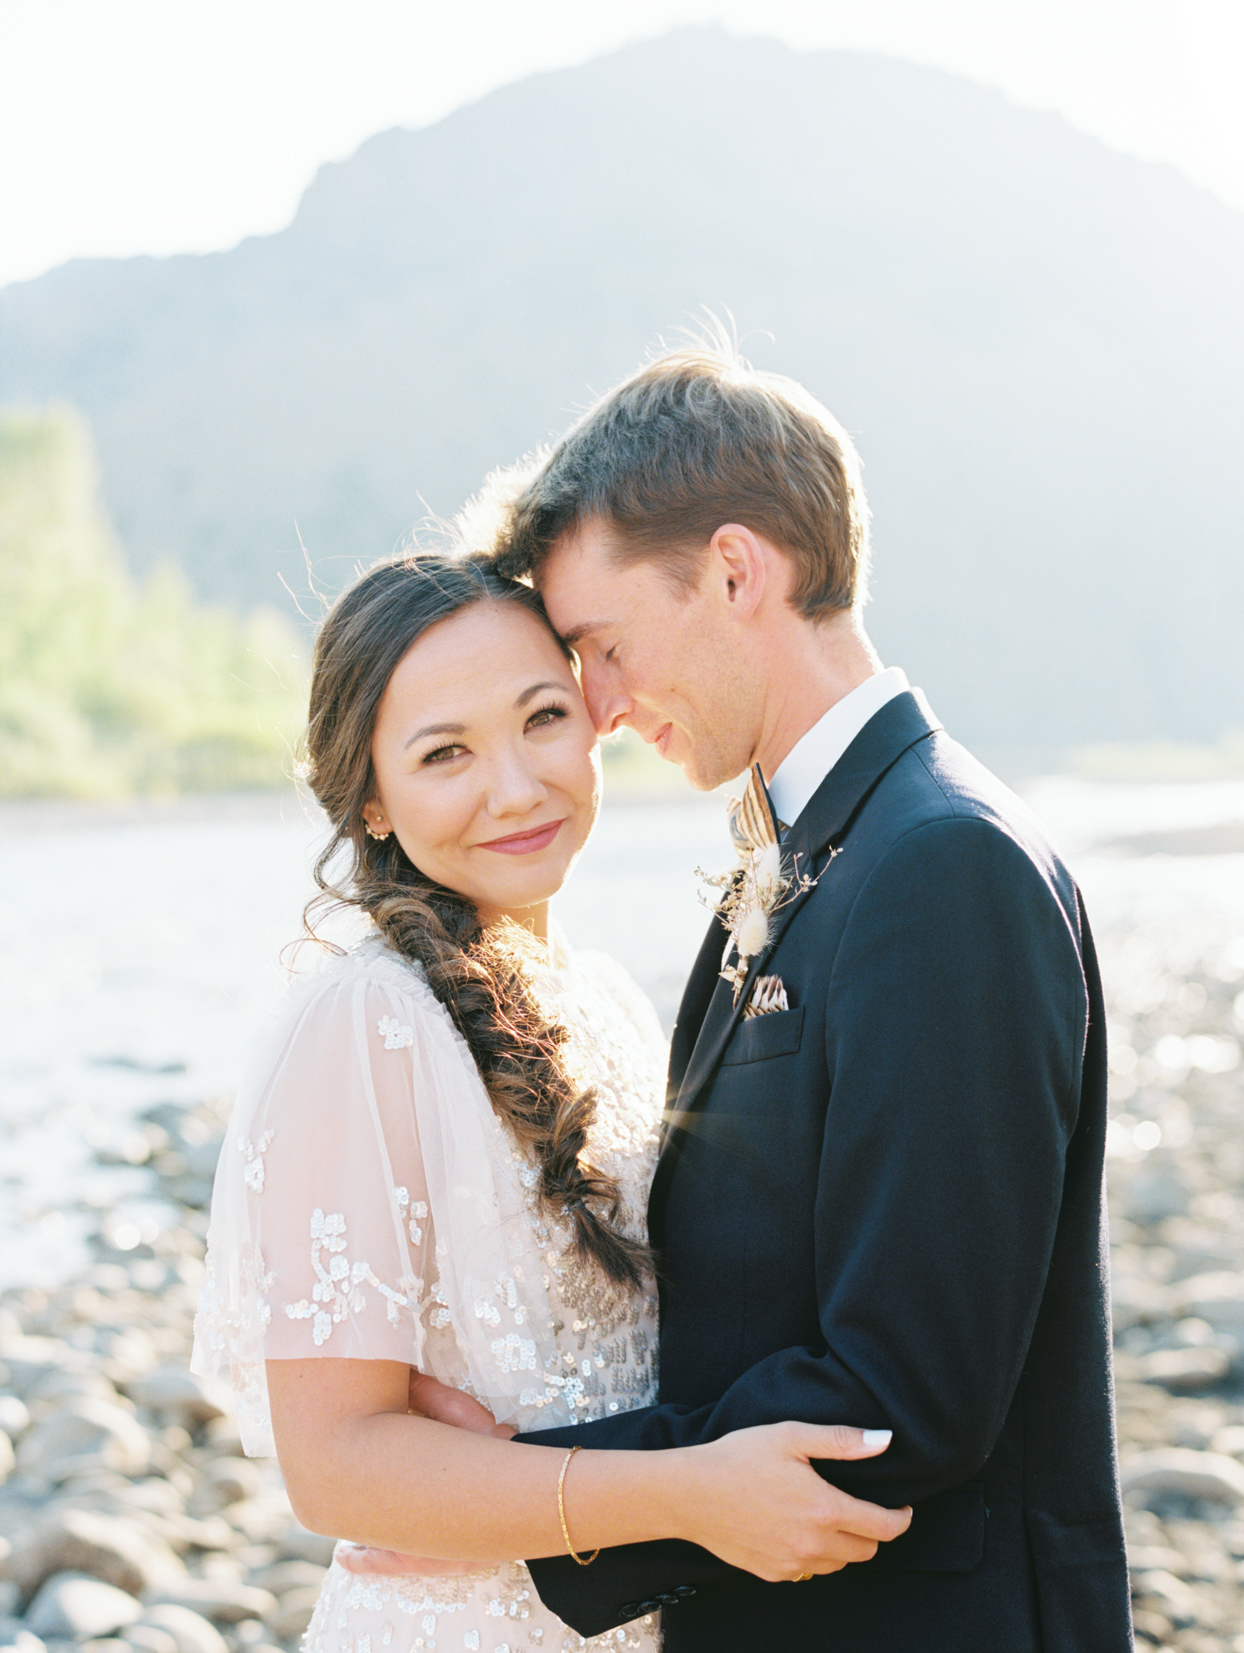 couple hugging for portrait with mountain backdrop